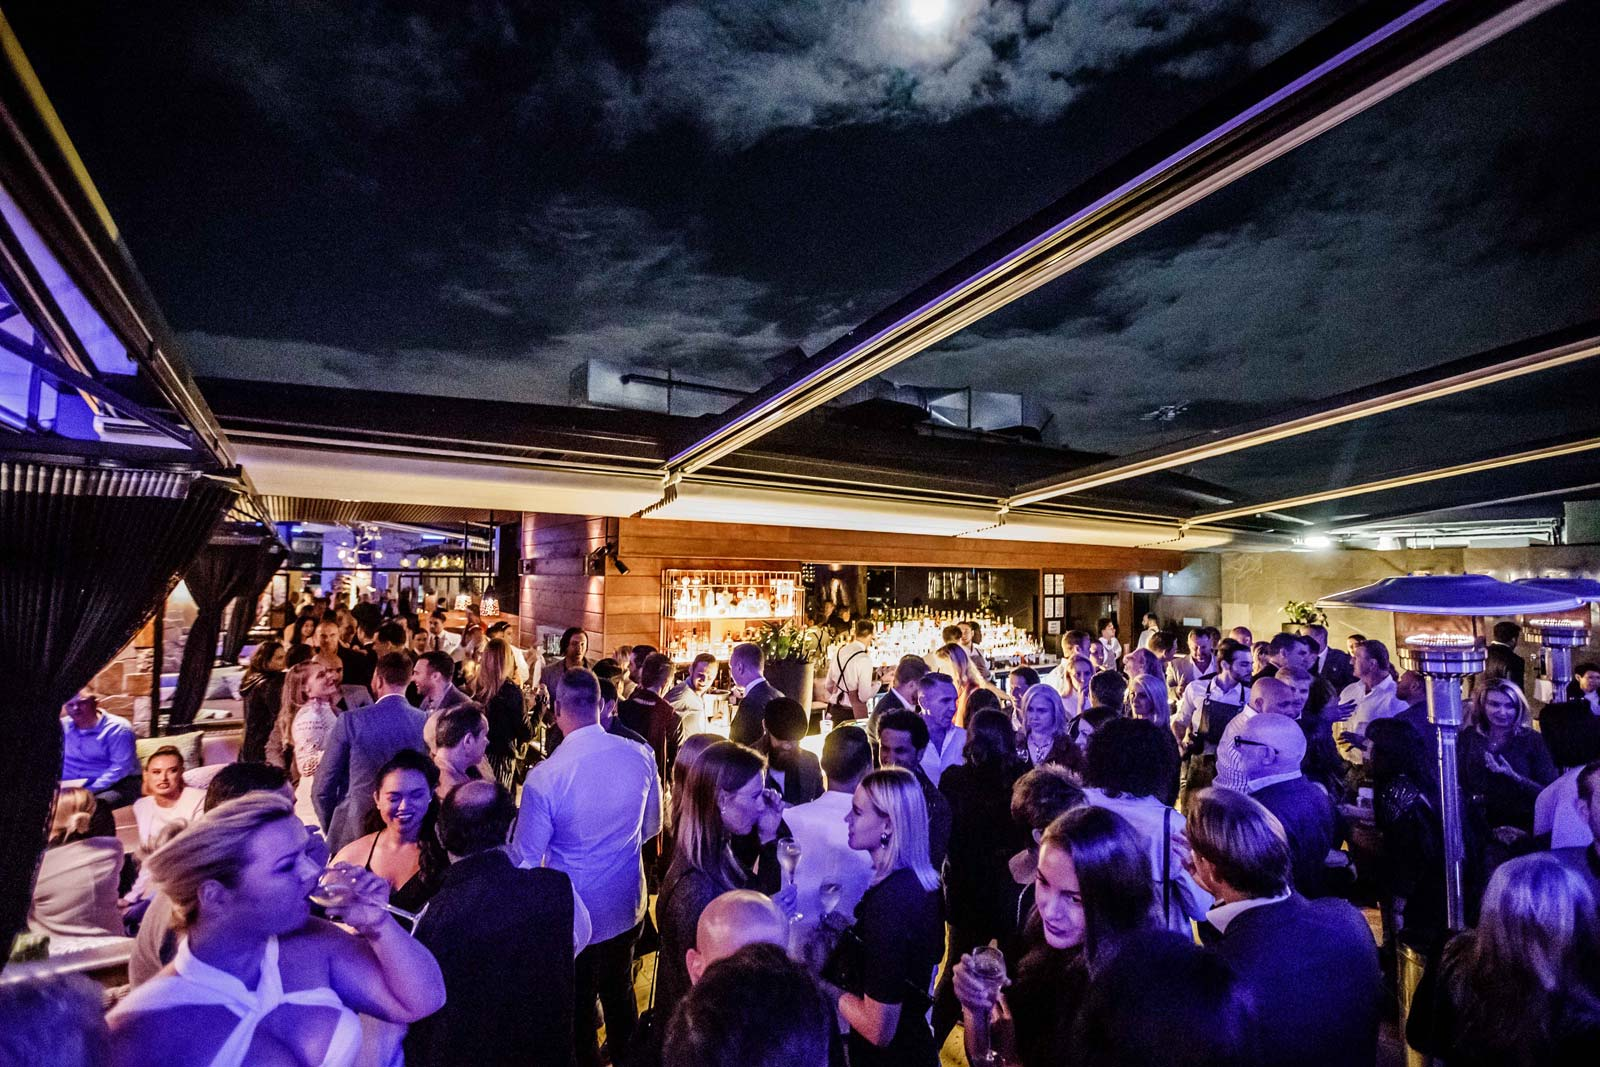 Enjoy a classy yet fun party atmosphere at the prestigious Eleven Rooftop Bar